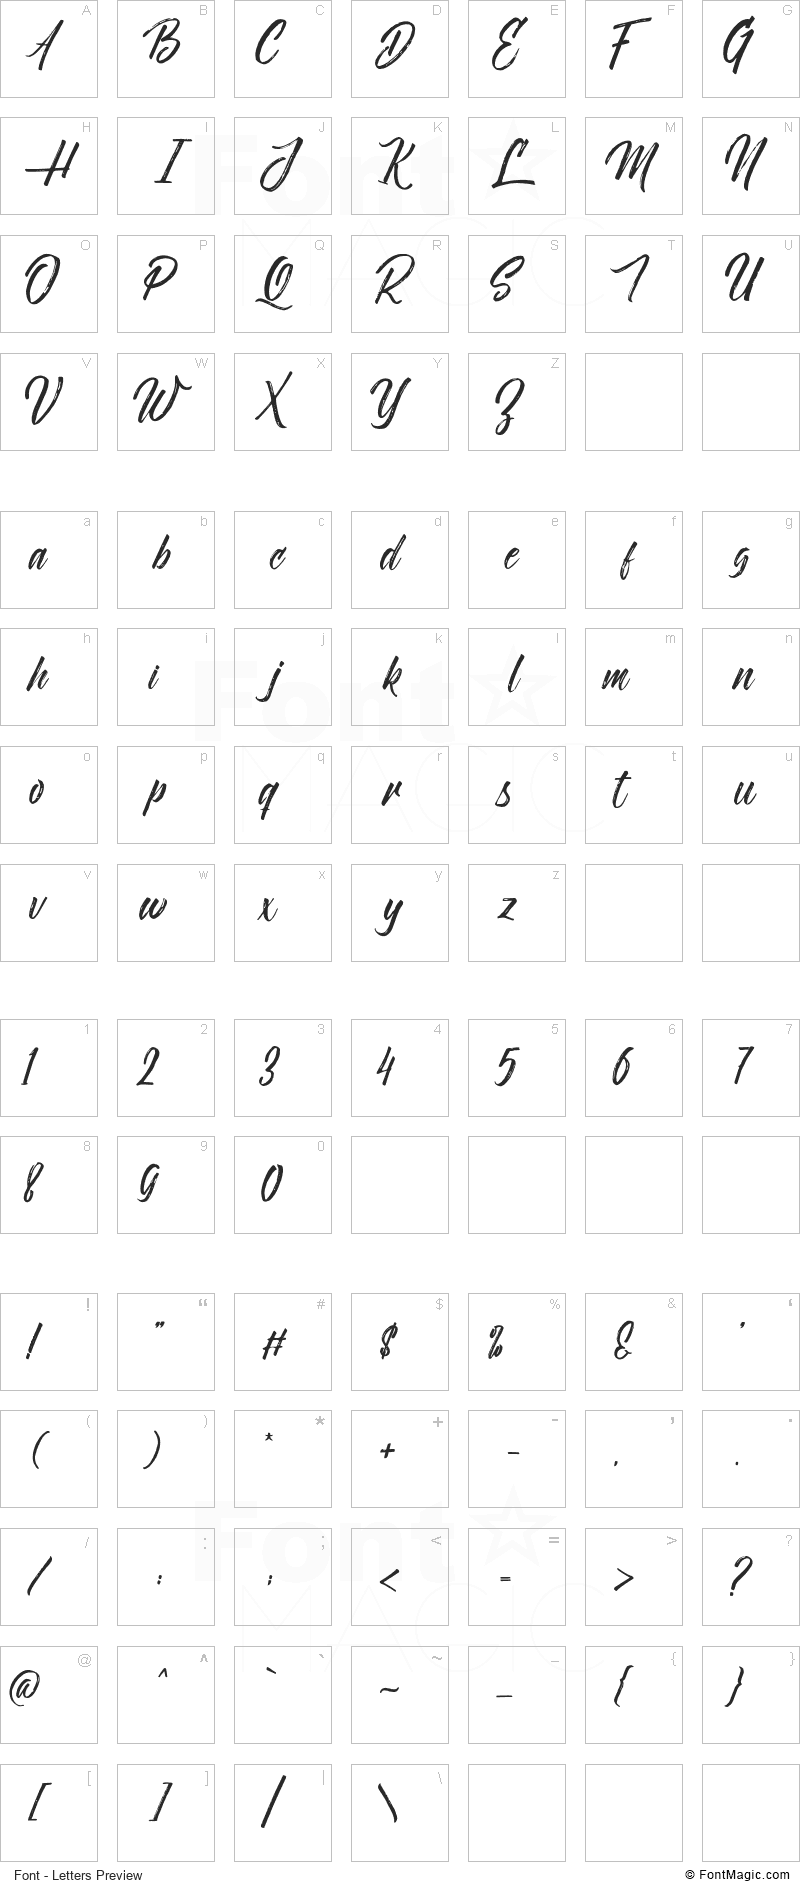 Novitha Script Font - All Latters Preview Chart